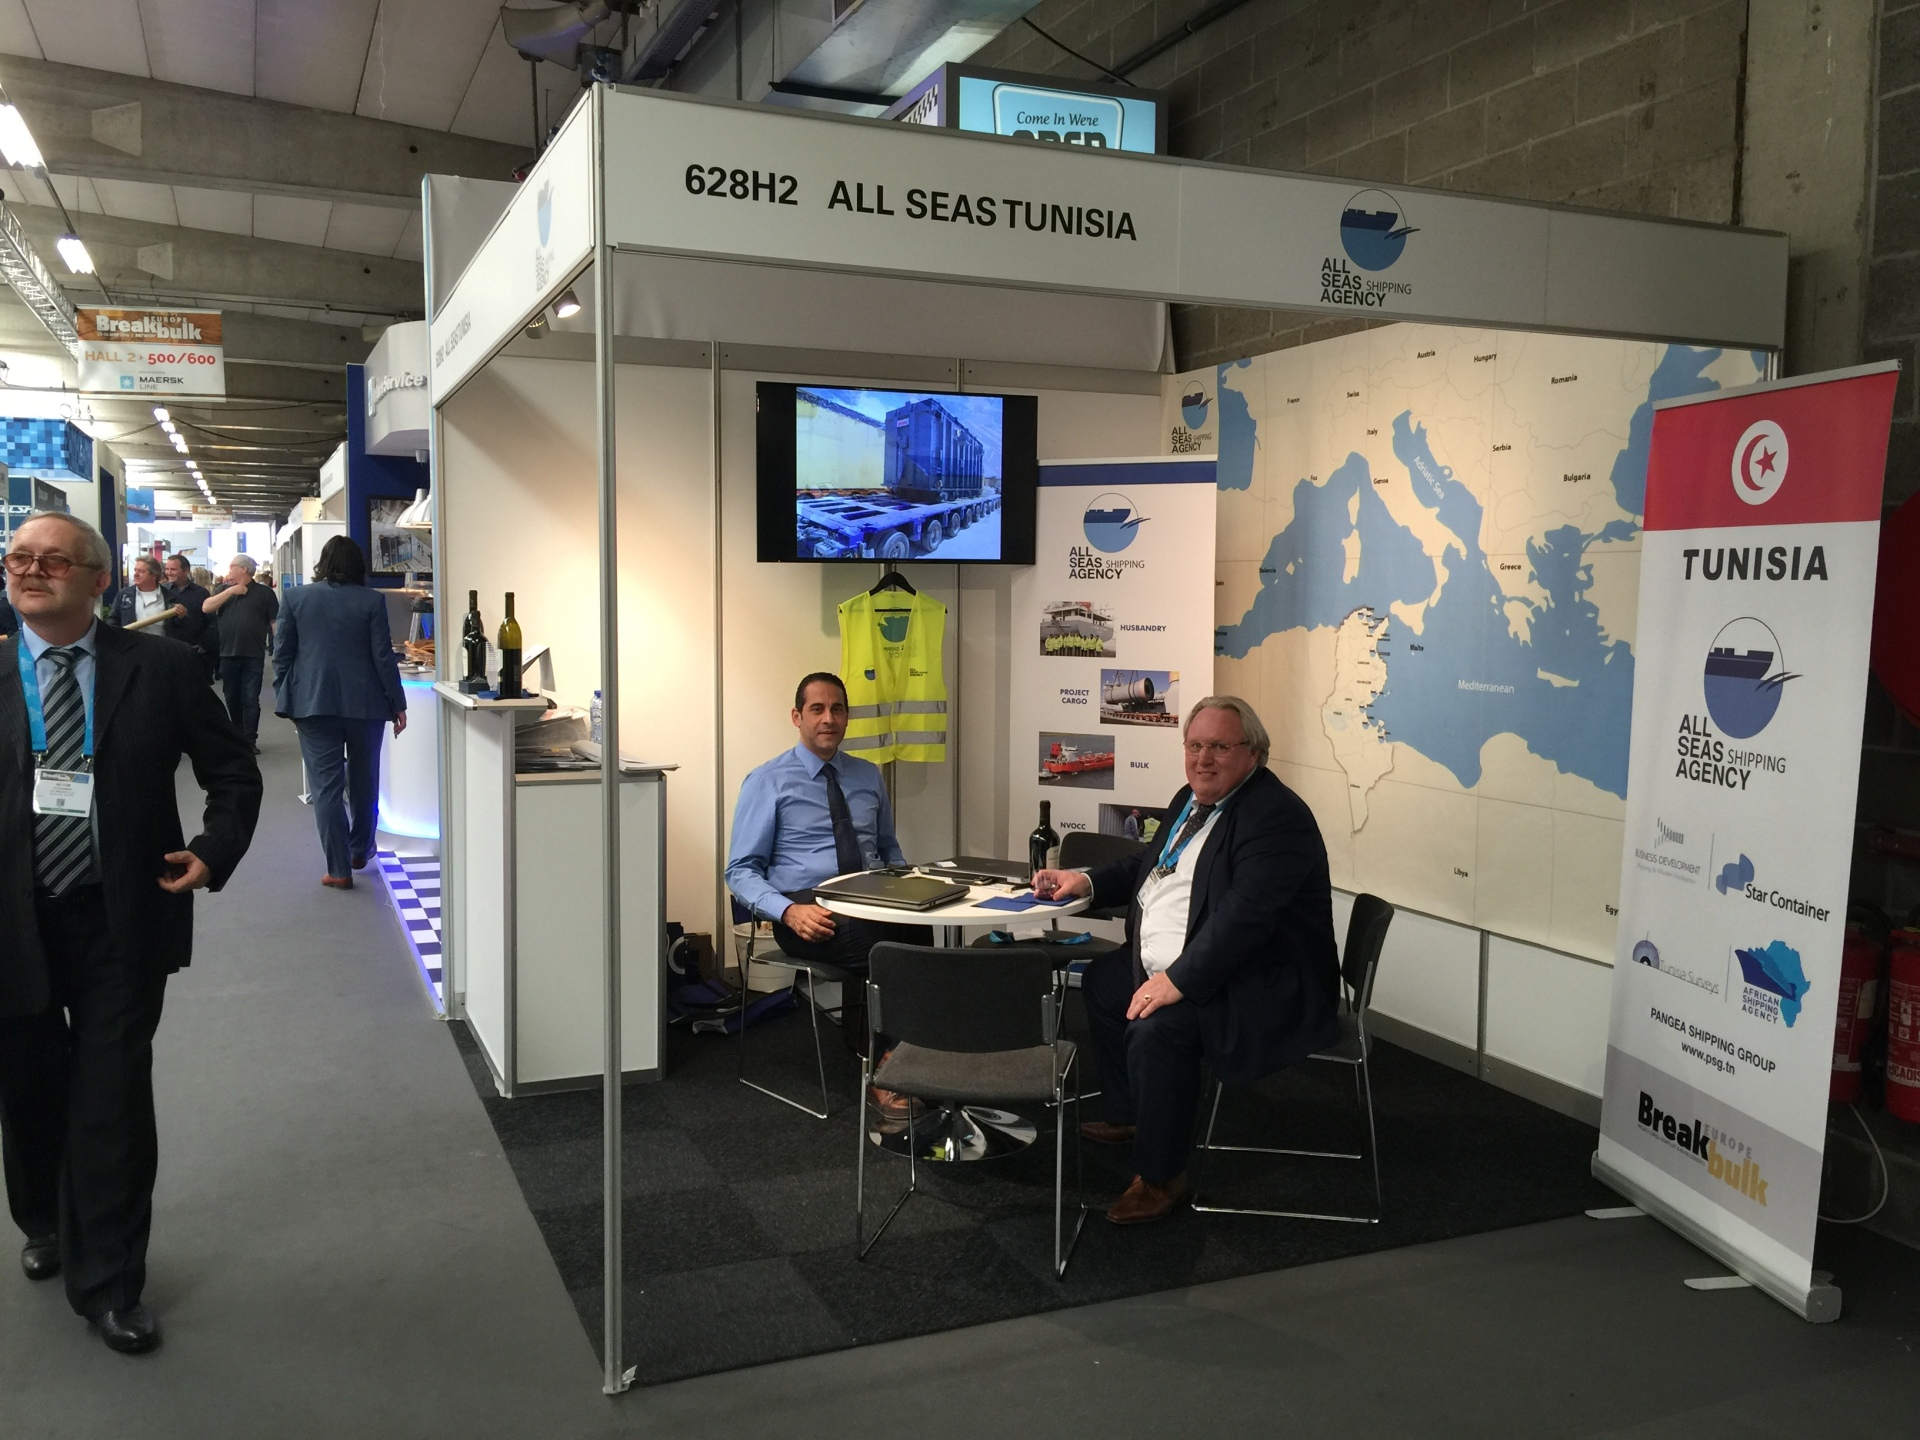 With Guests in Breakbulk Europe 2017